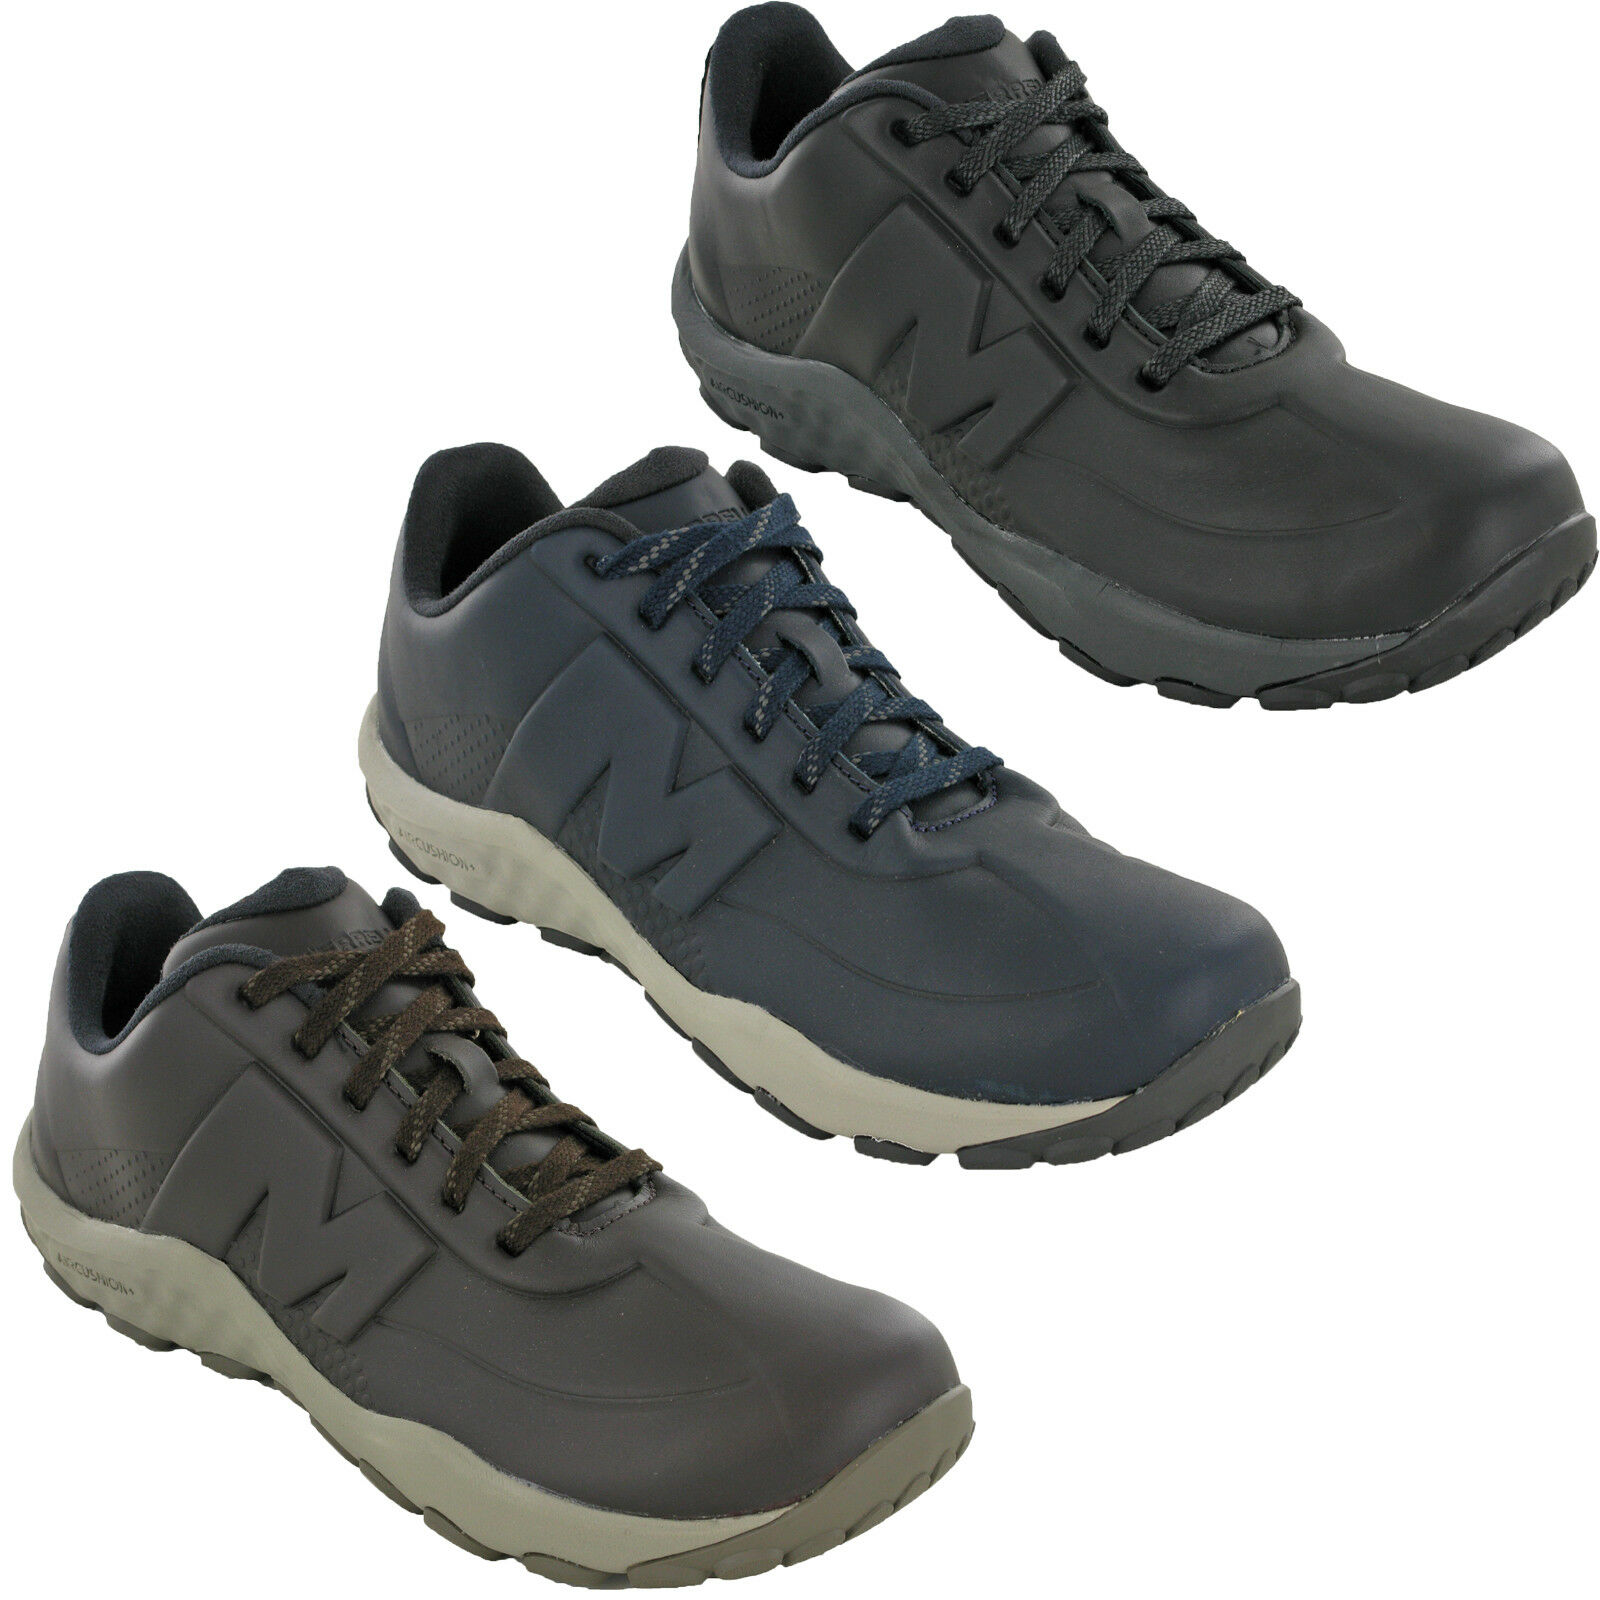 Merrell Sprint Lace Ltr AC+ Trainers Mens Walking Casual Air Cushioned schuhe